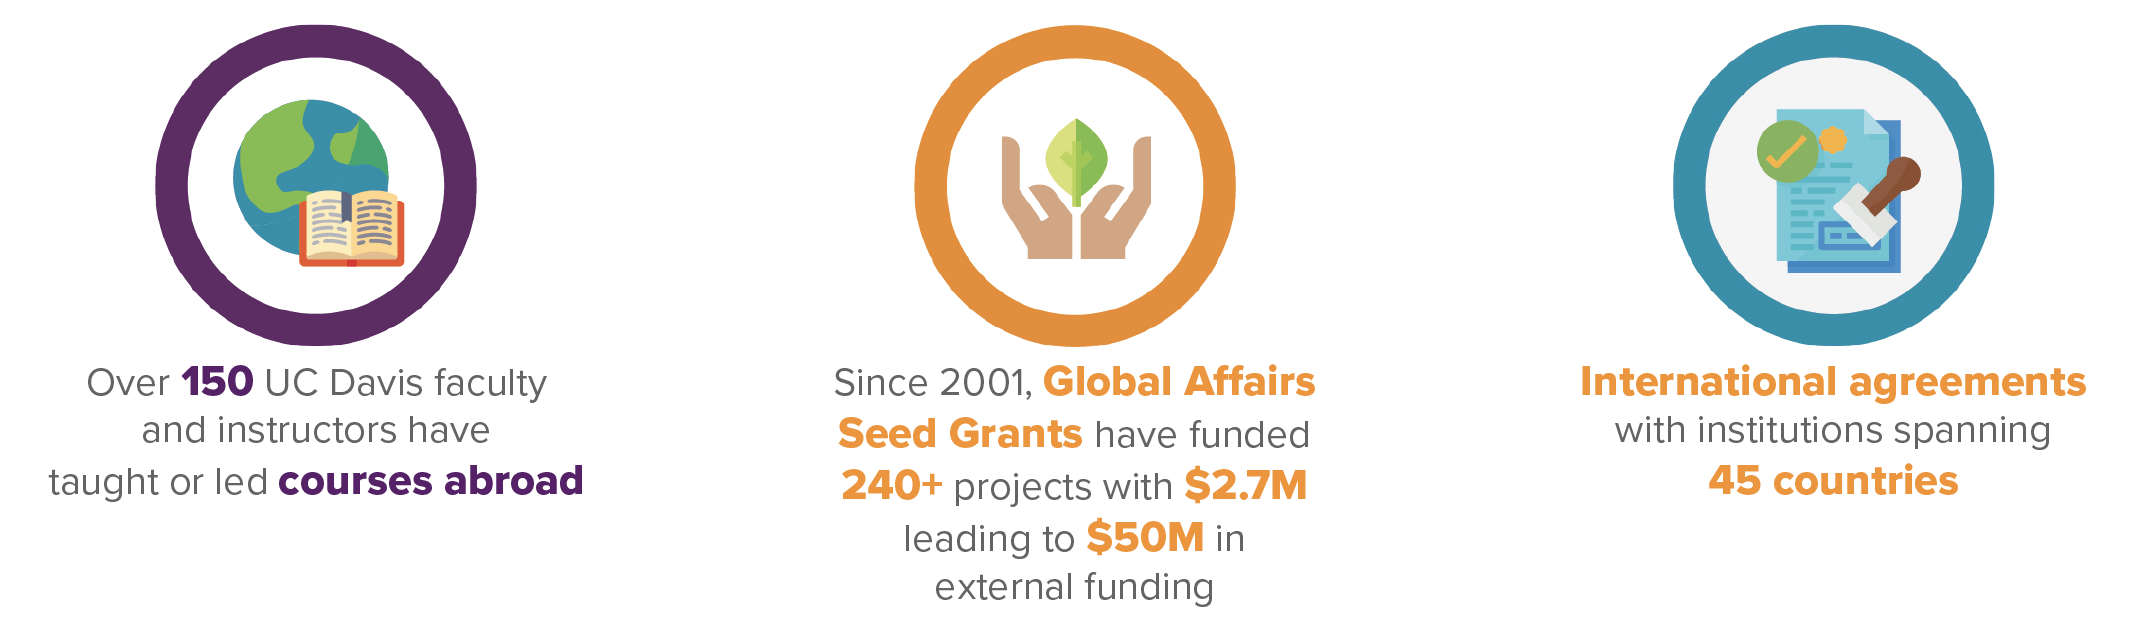 graphic: more than 150 faculty have taught education abroad courses, more than 220 seed grant projects have led to more than $40 million in external funding, agreements of cooperation with institutions spanning 45 countries